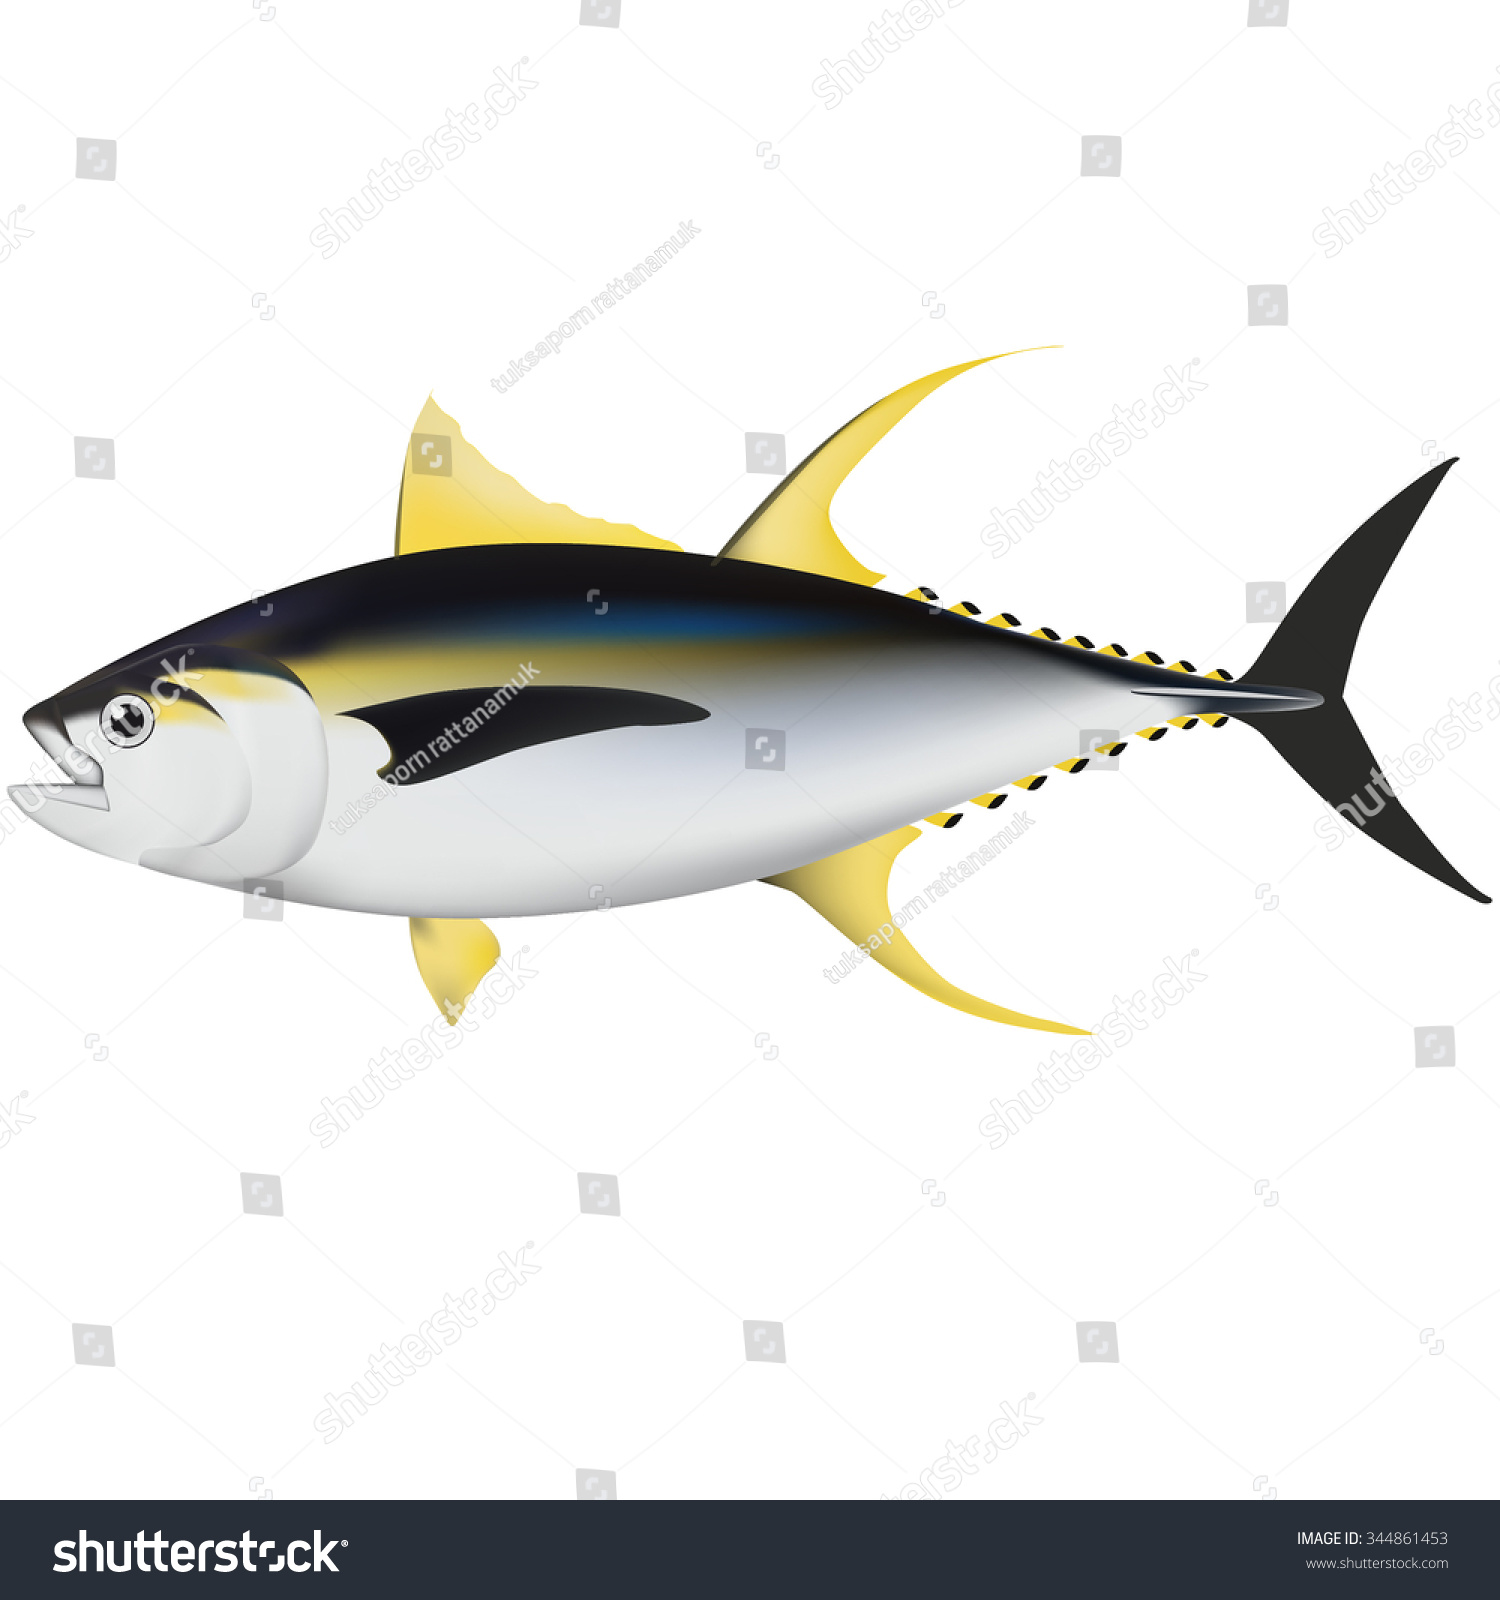 Tuna Marine Fish Illustrator Stock Vector 344861453 - Shutterstock